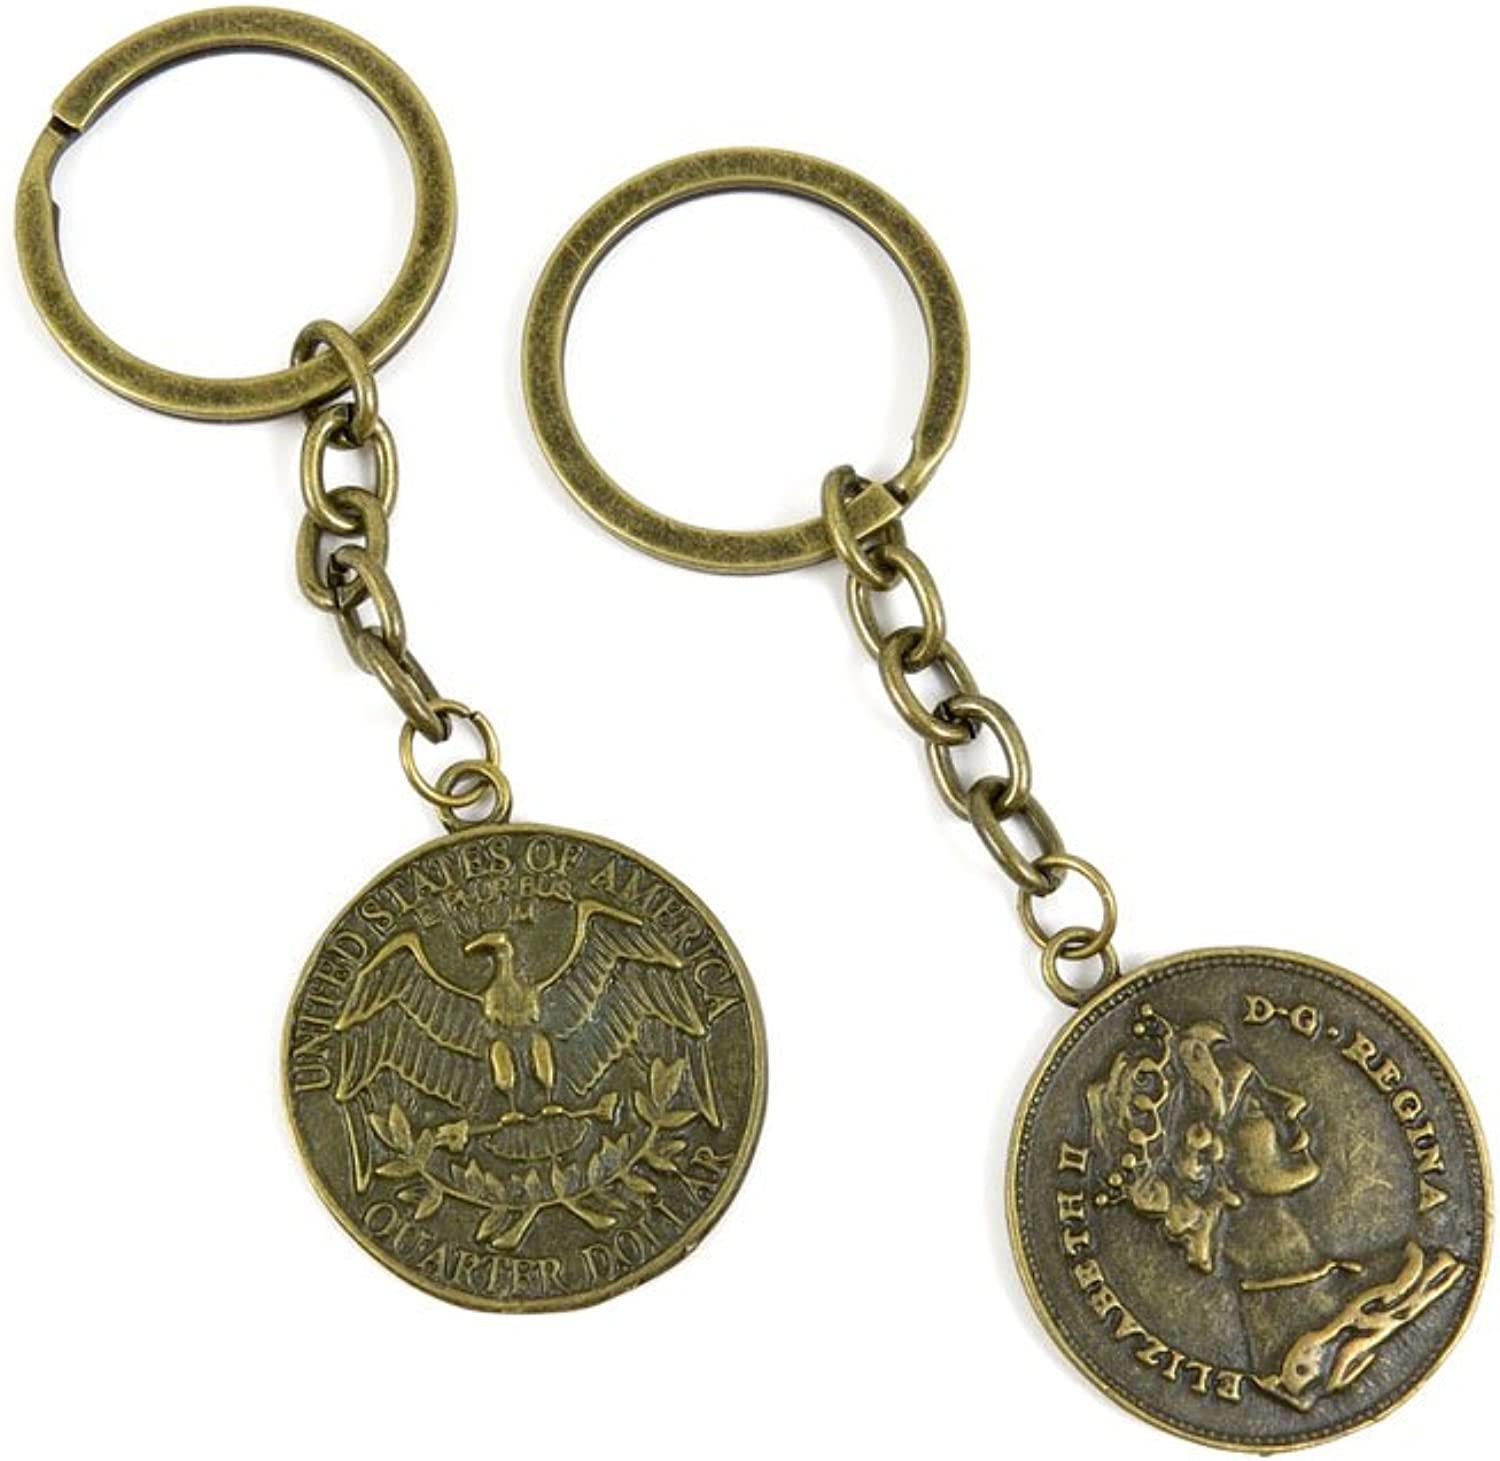 120 Pieces Fashion Jewelry Keyring Keychain Door Car Key Tag Ring Chain Supplier Supply Wholesale Bulk Lots Q4GC1 US Dollar King Sign